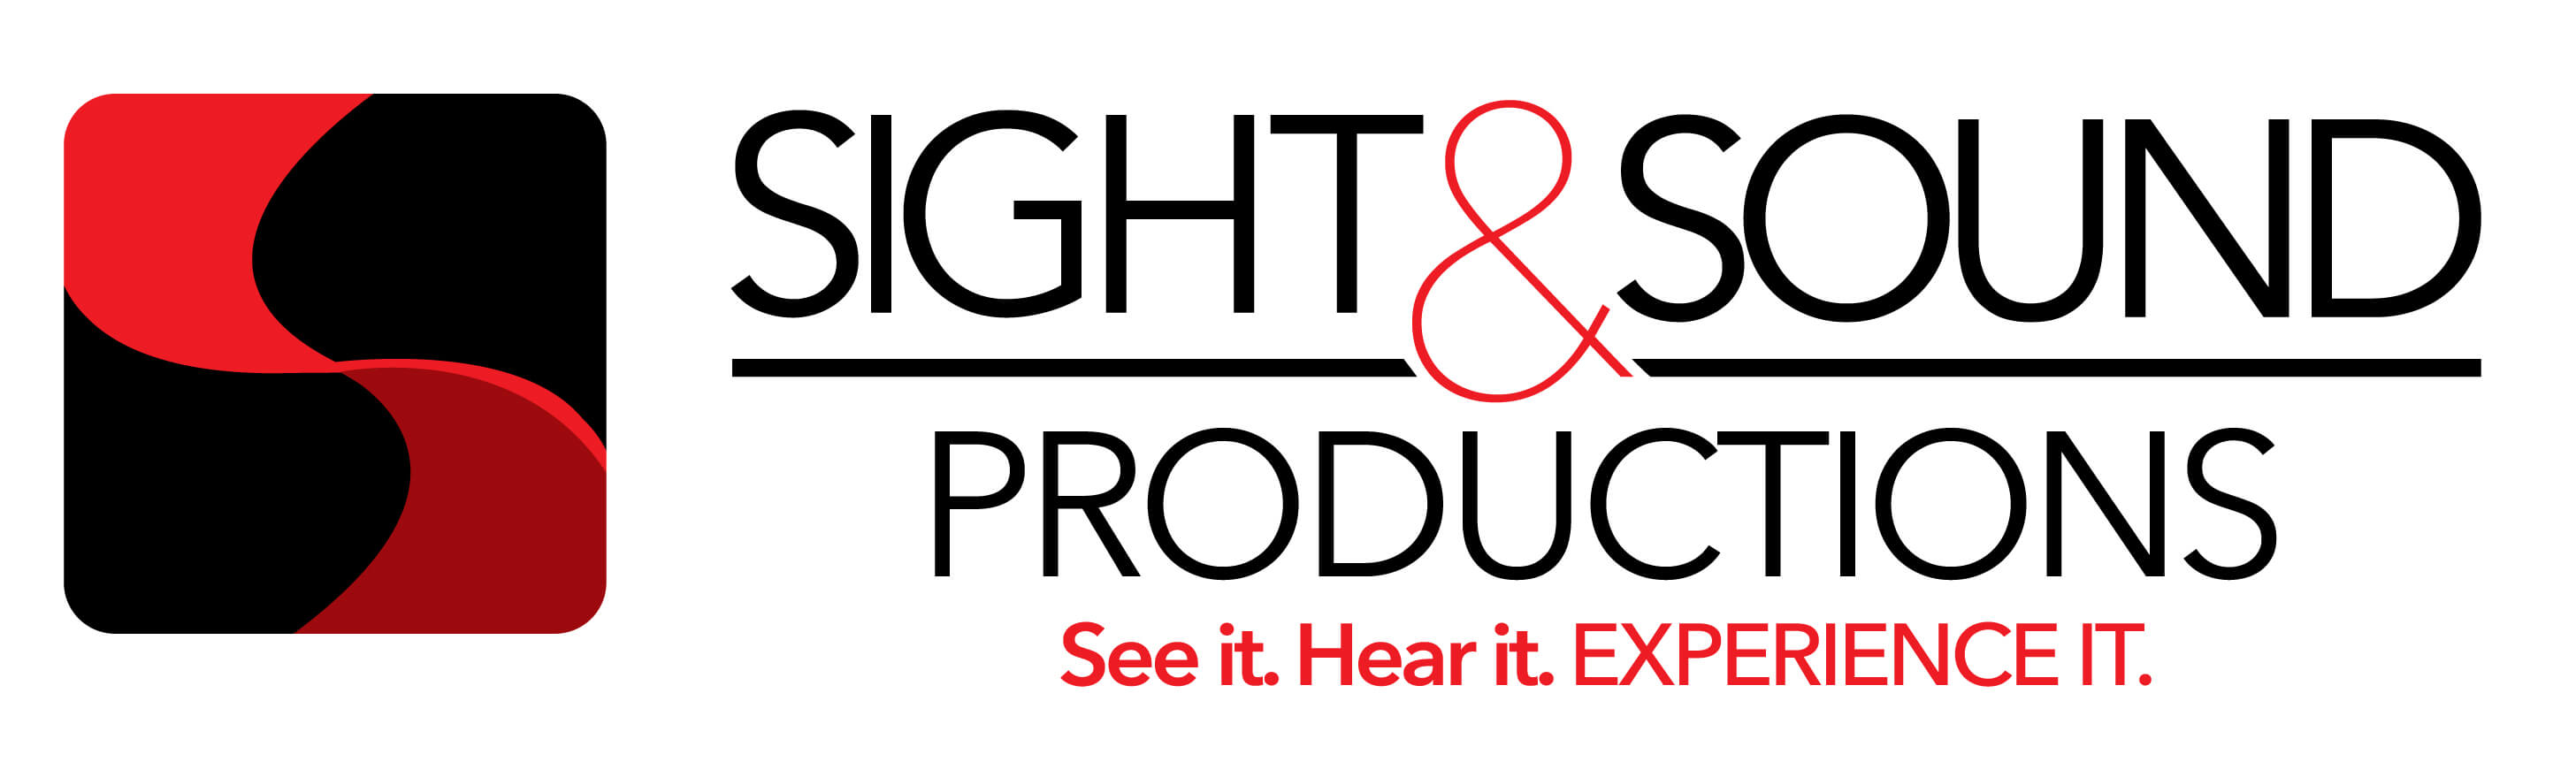 sight and sound productions - HEAL Sponsor